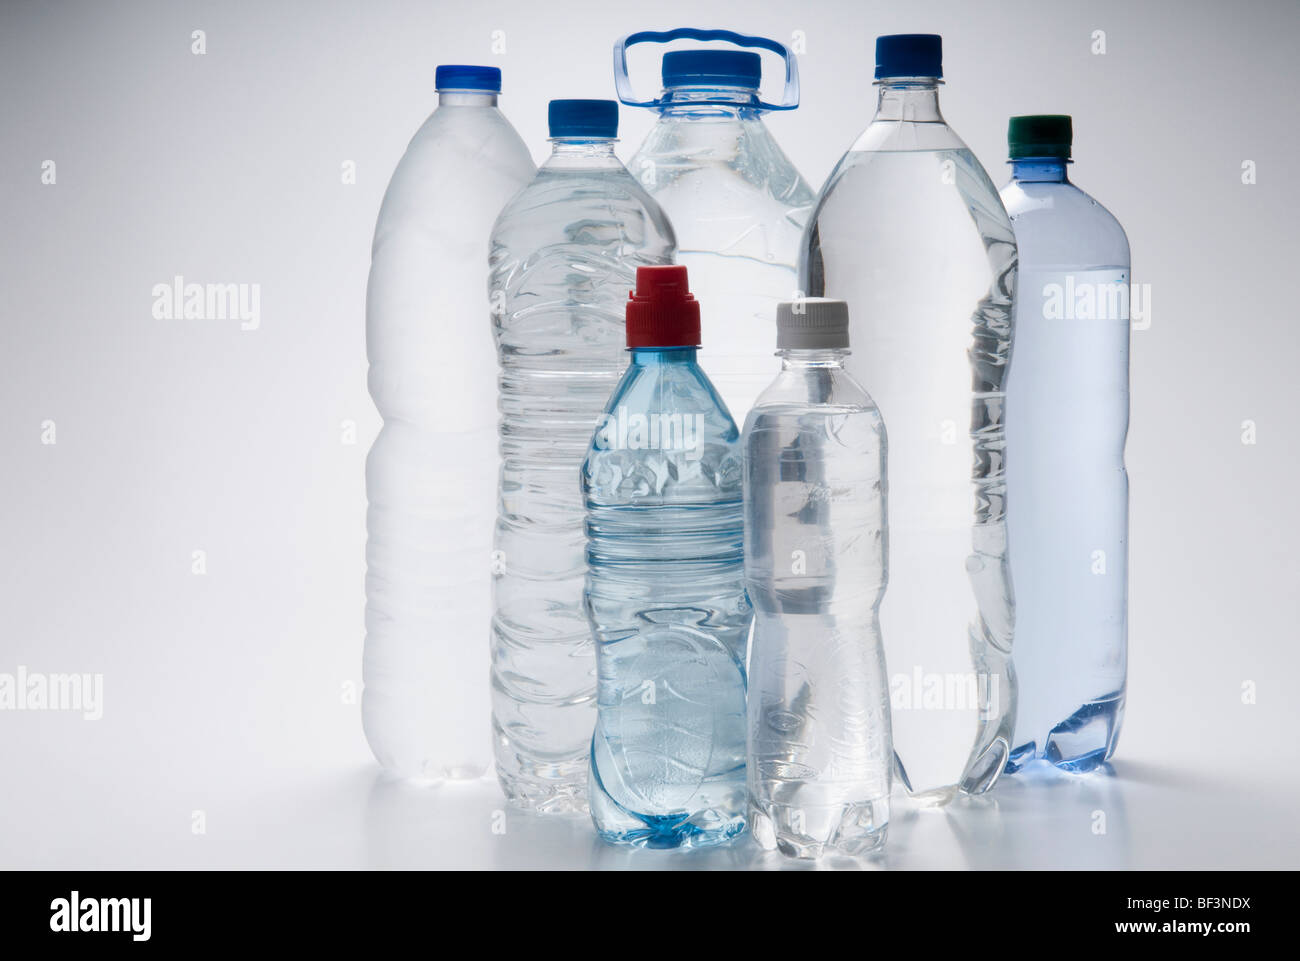 Assorted bottles of water - Stock Image